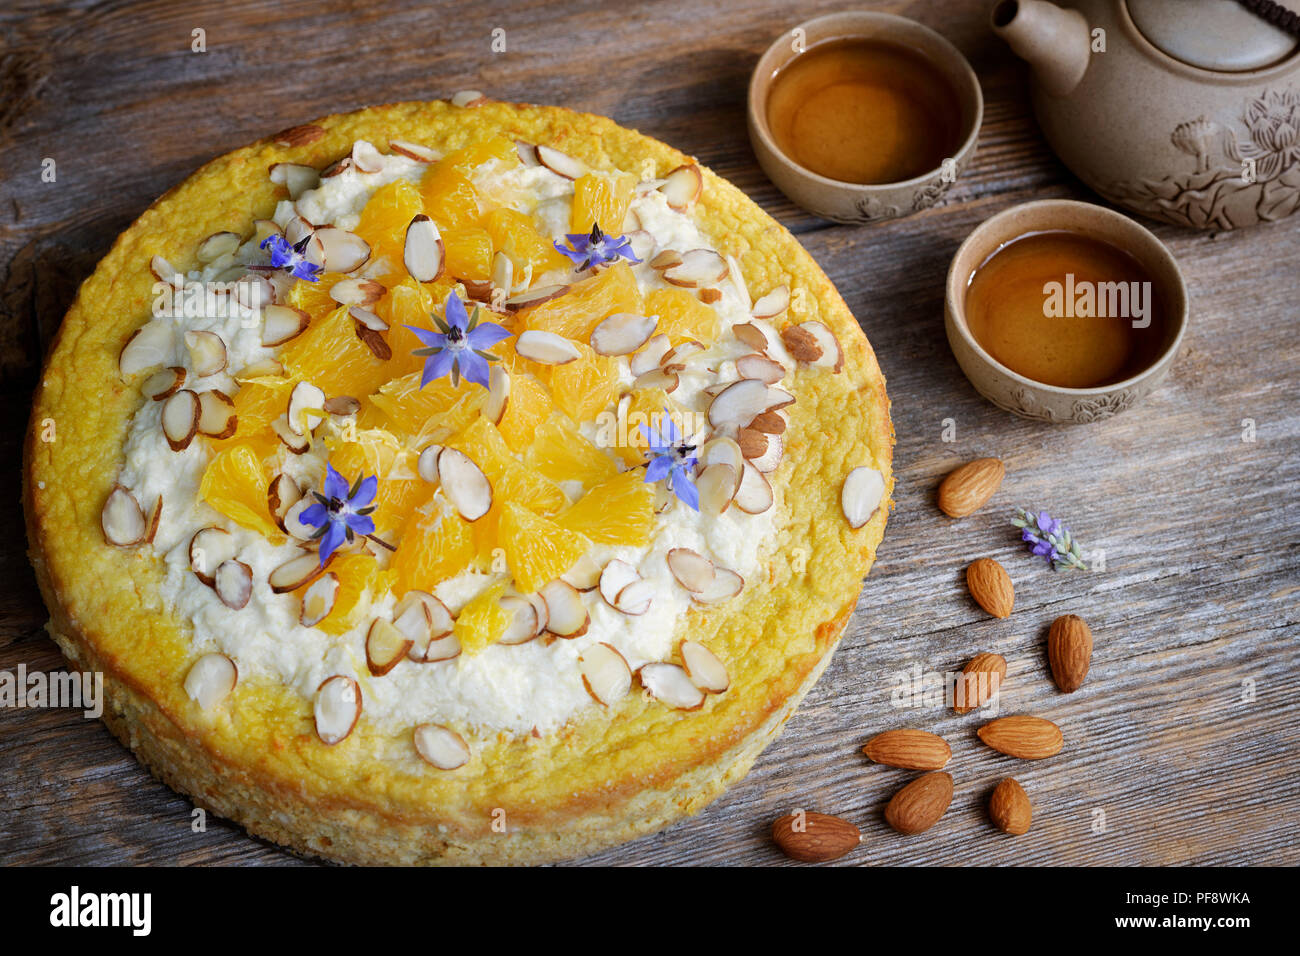 Healthy home-made flourless, sugar-free vegan fruit cake made of almond flour, oranges and coconut oil, artistic food still life on rustic wooden tabl - Stock Image